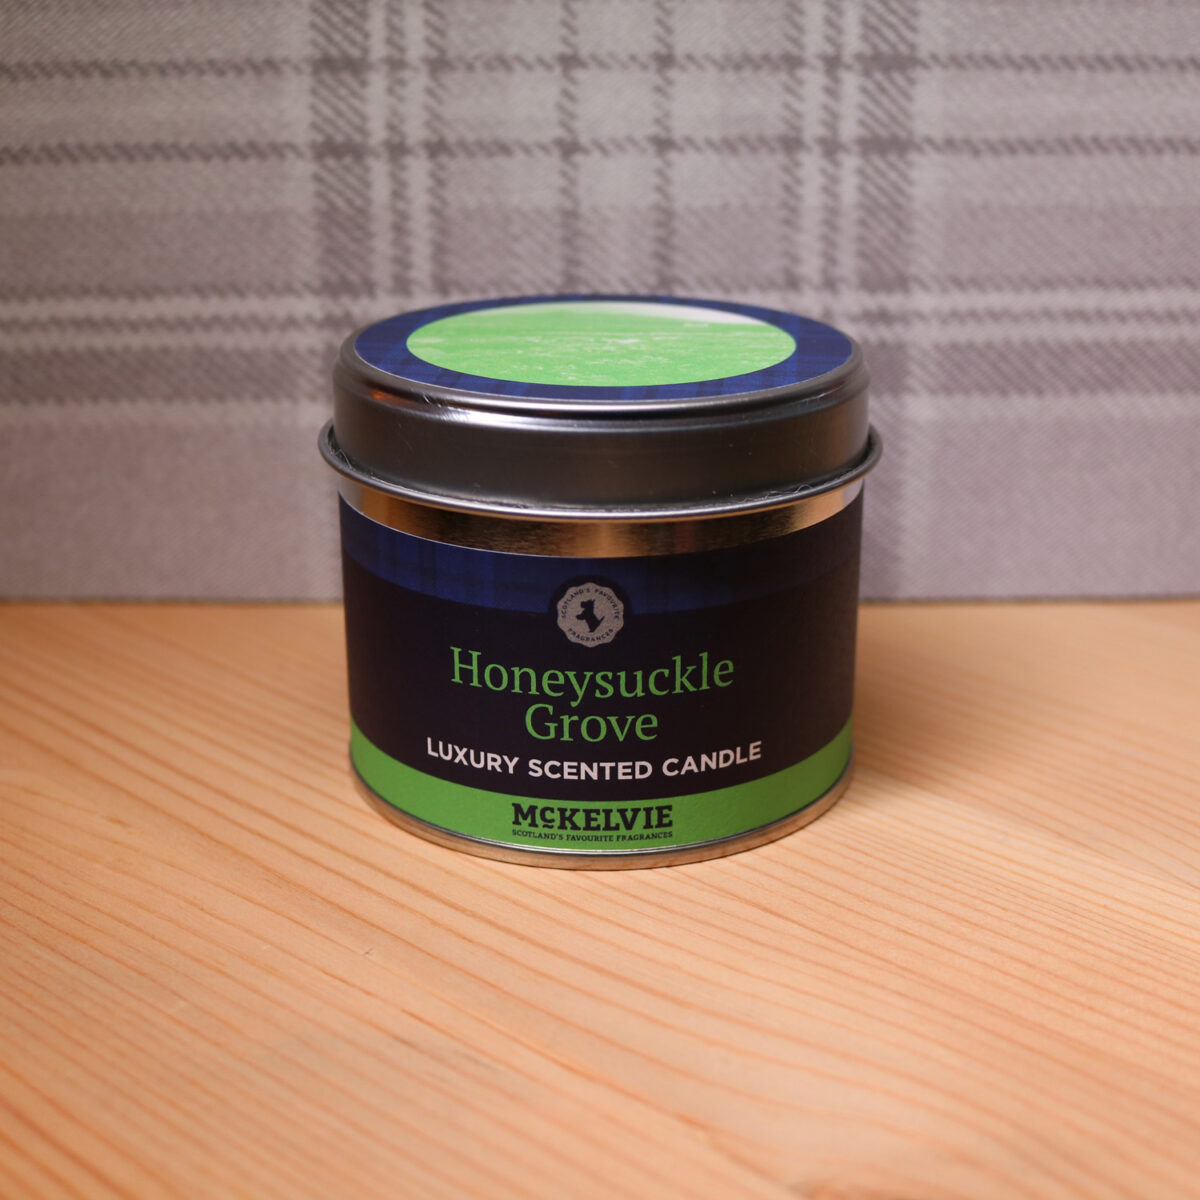 Honeysuckle Grove Scented Candle Tin